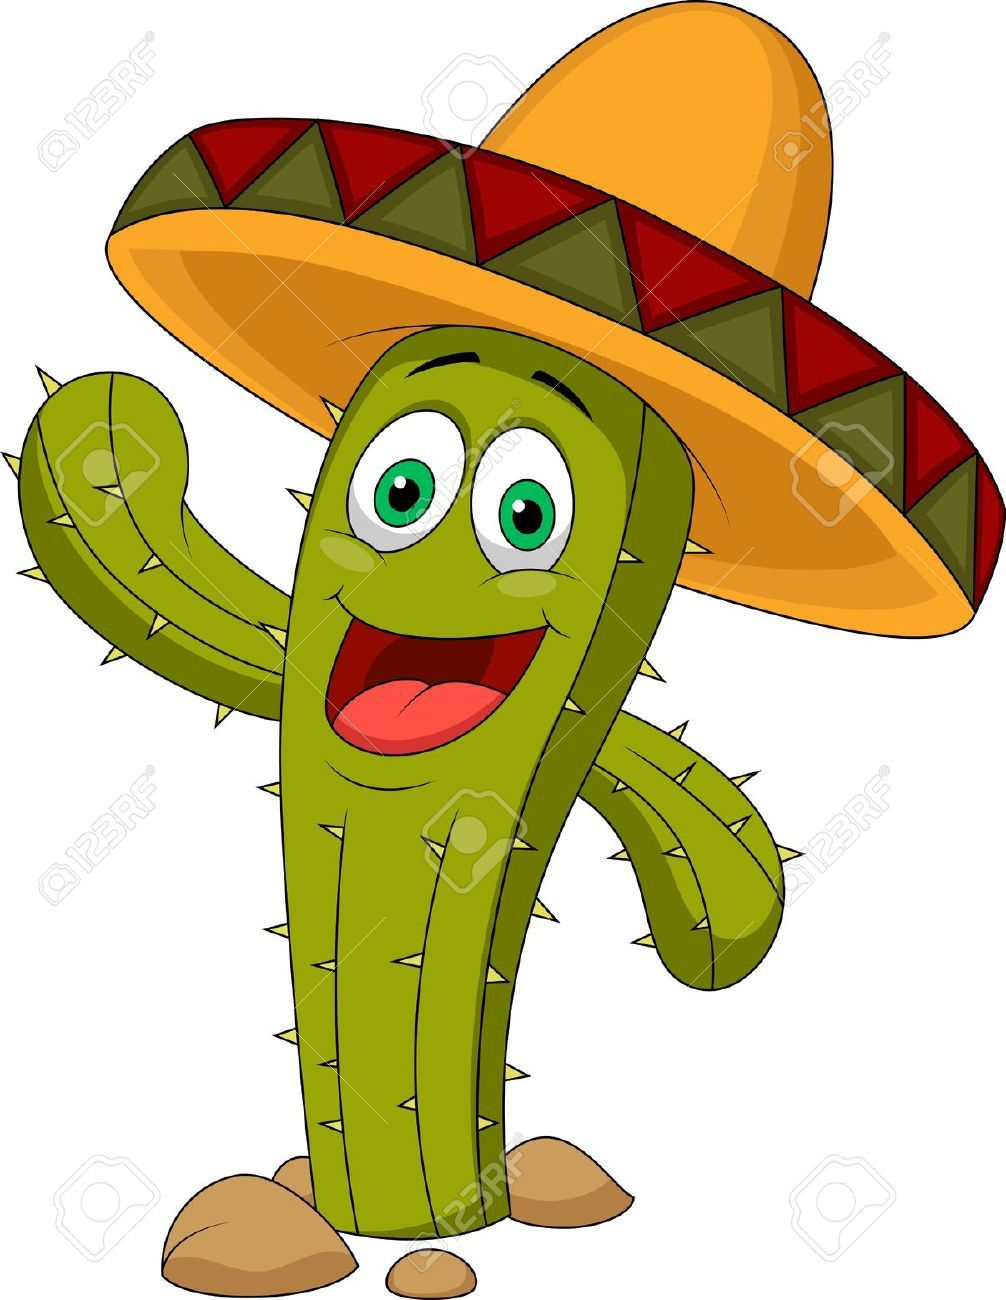 Cartoon Characters Mexican : Cute cactus cartoon character stock vector mexico